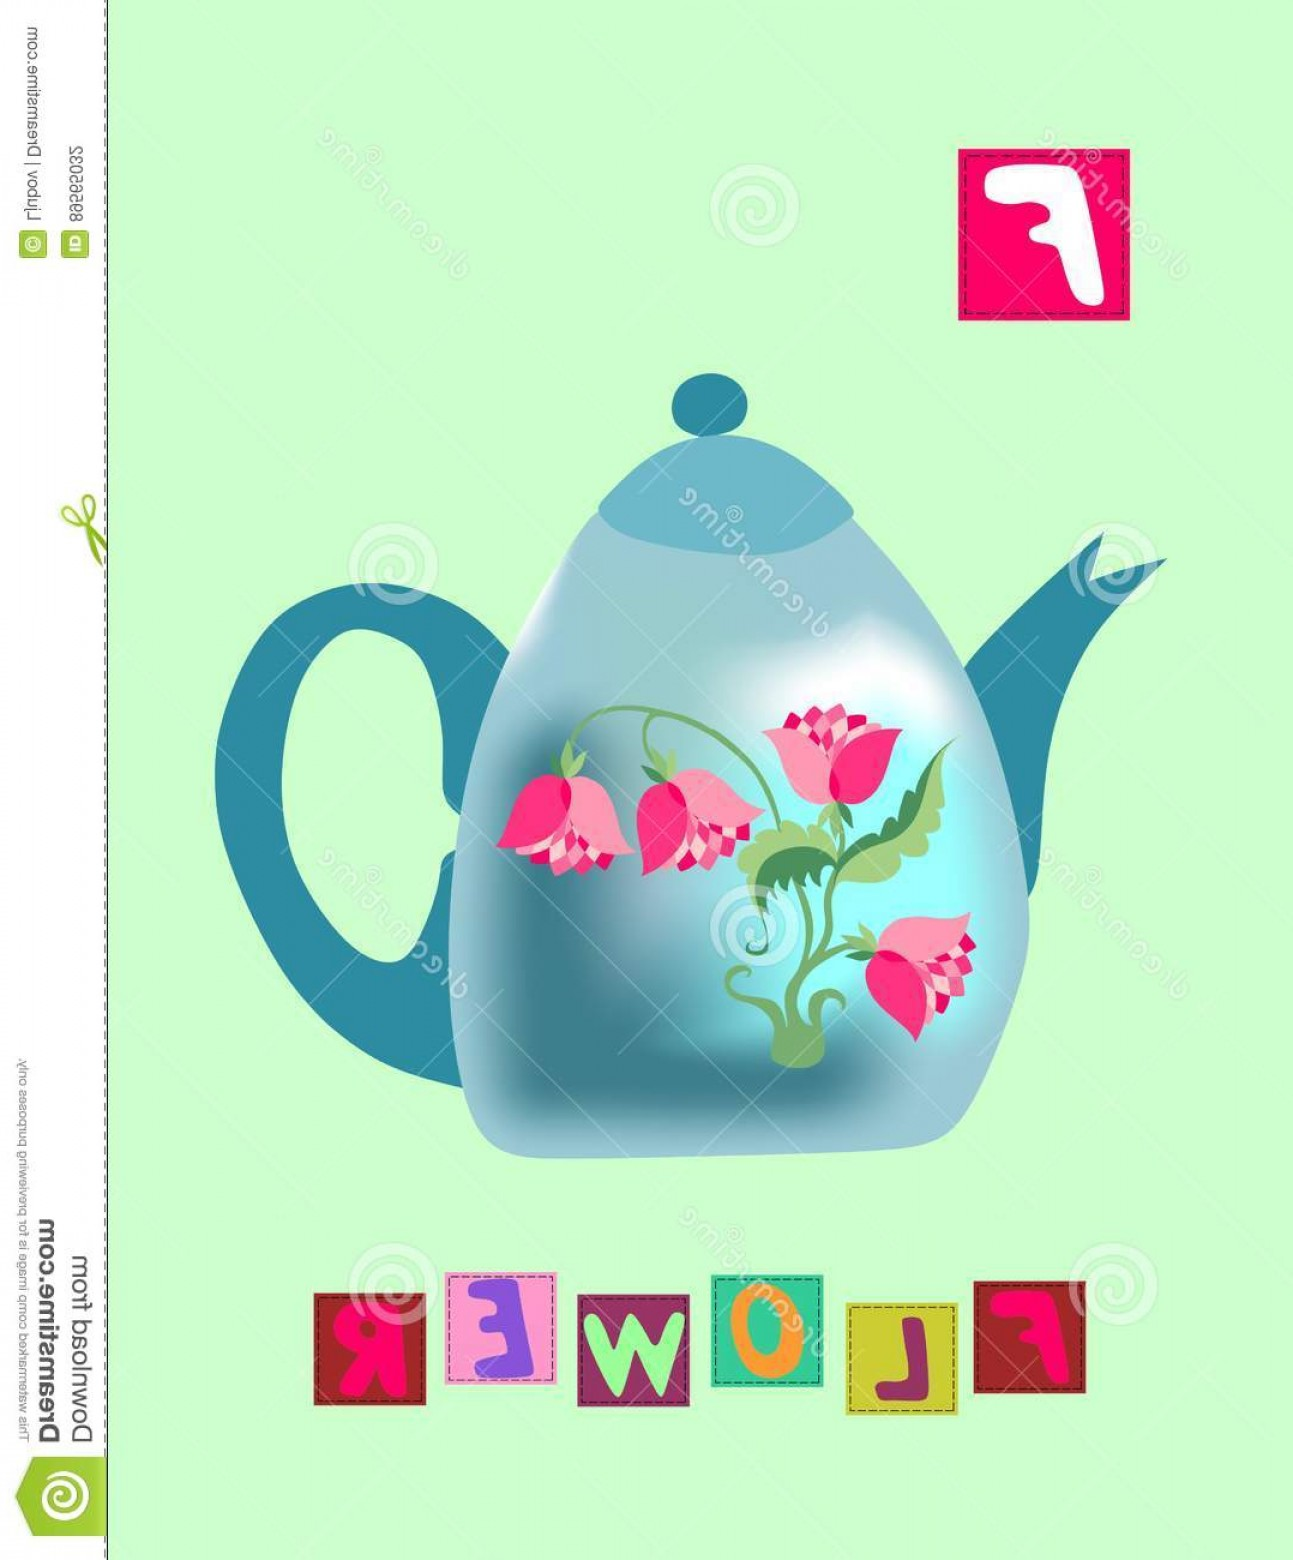 Vector ABC History: Stock Illustration Tea History Letter F Flower Cute Cartoon English Alphabet Colorful Image Word Kids Vector Abc Green Background Image